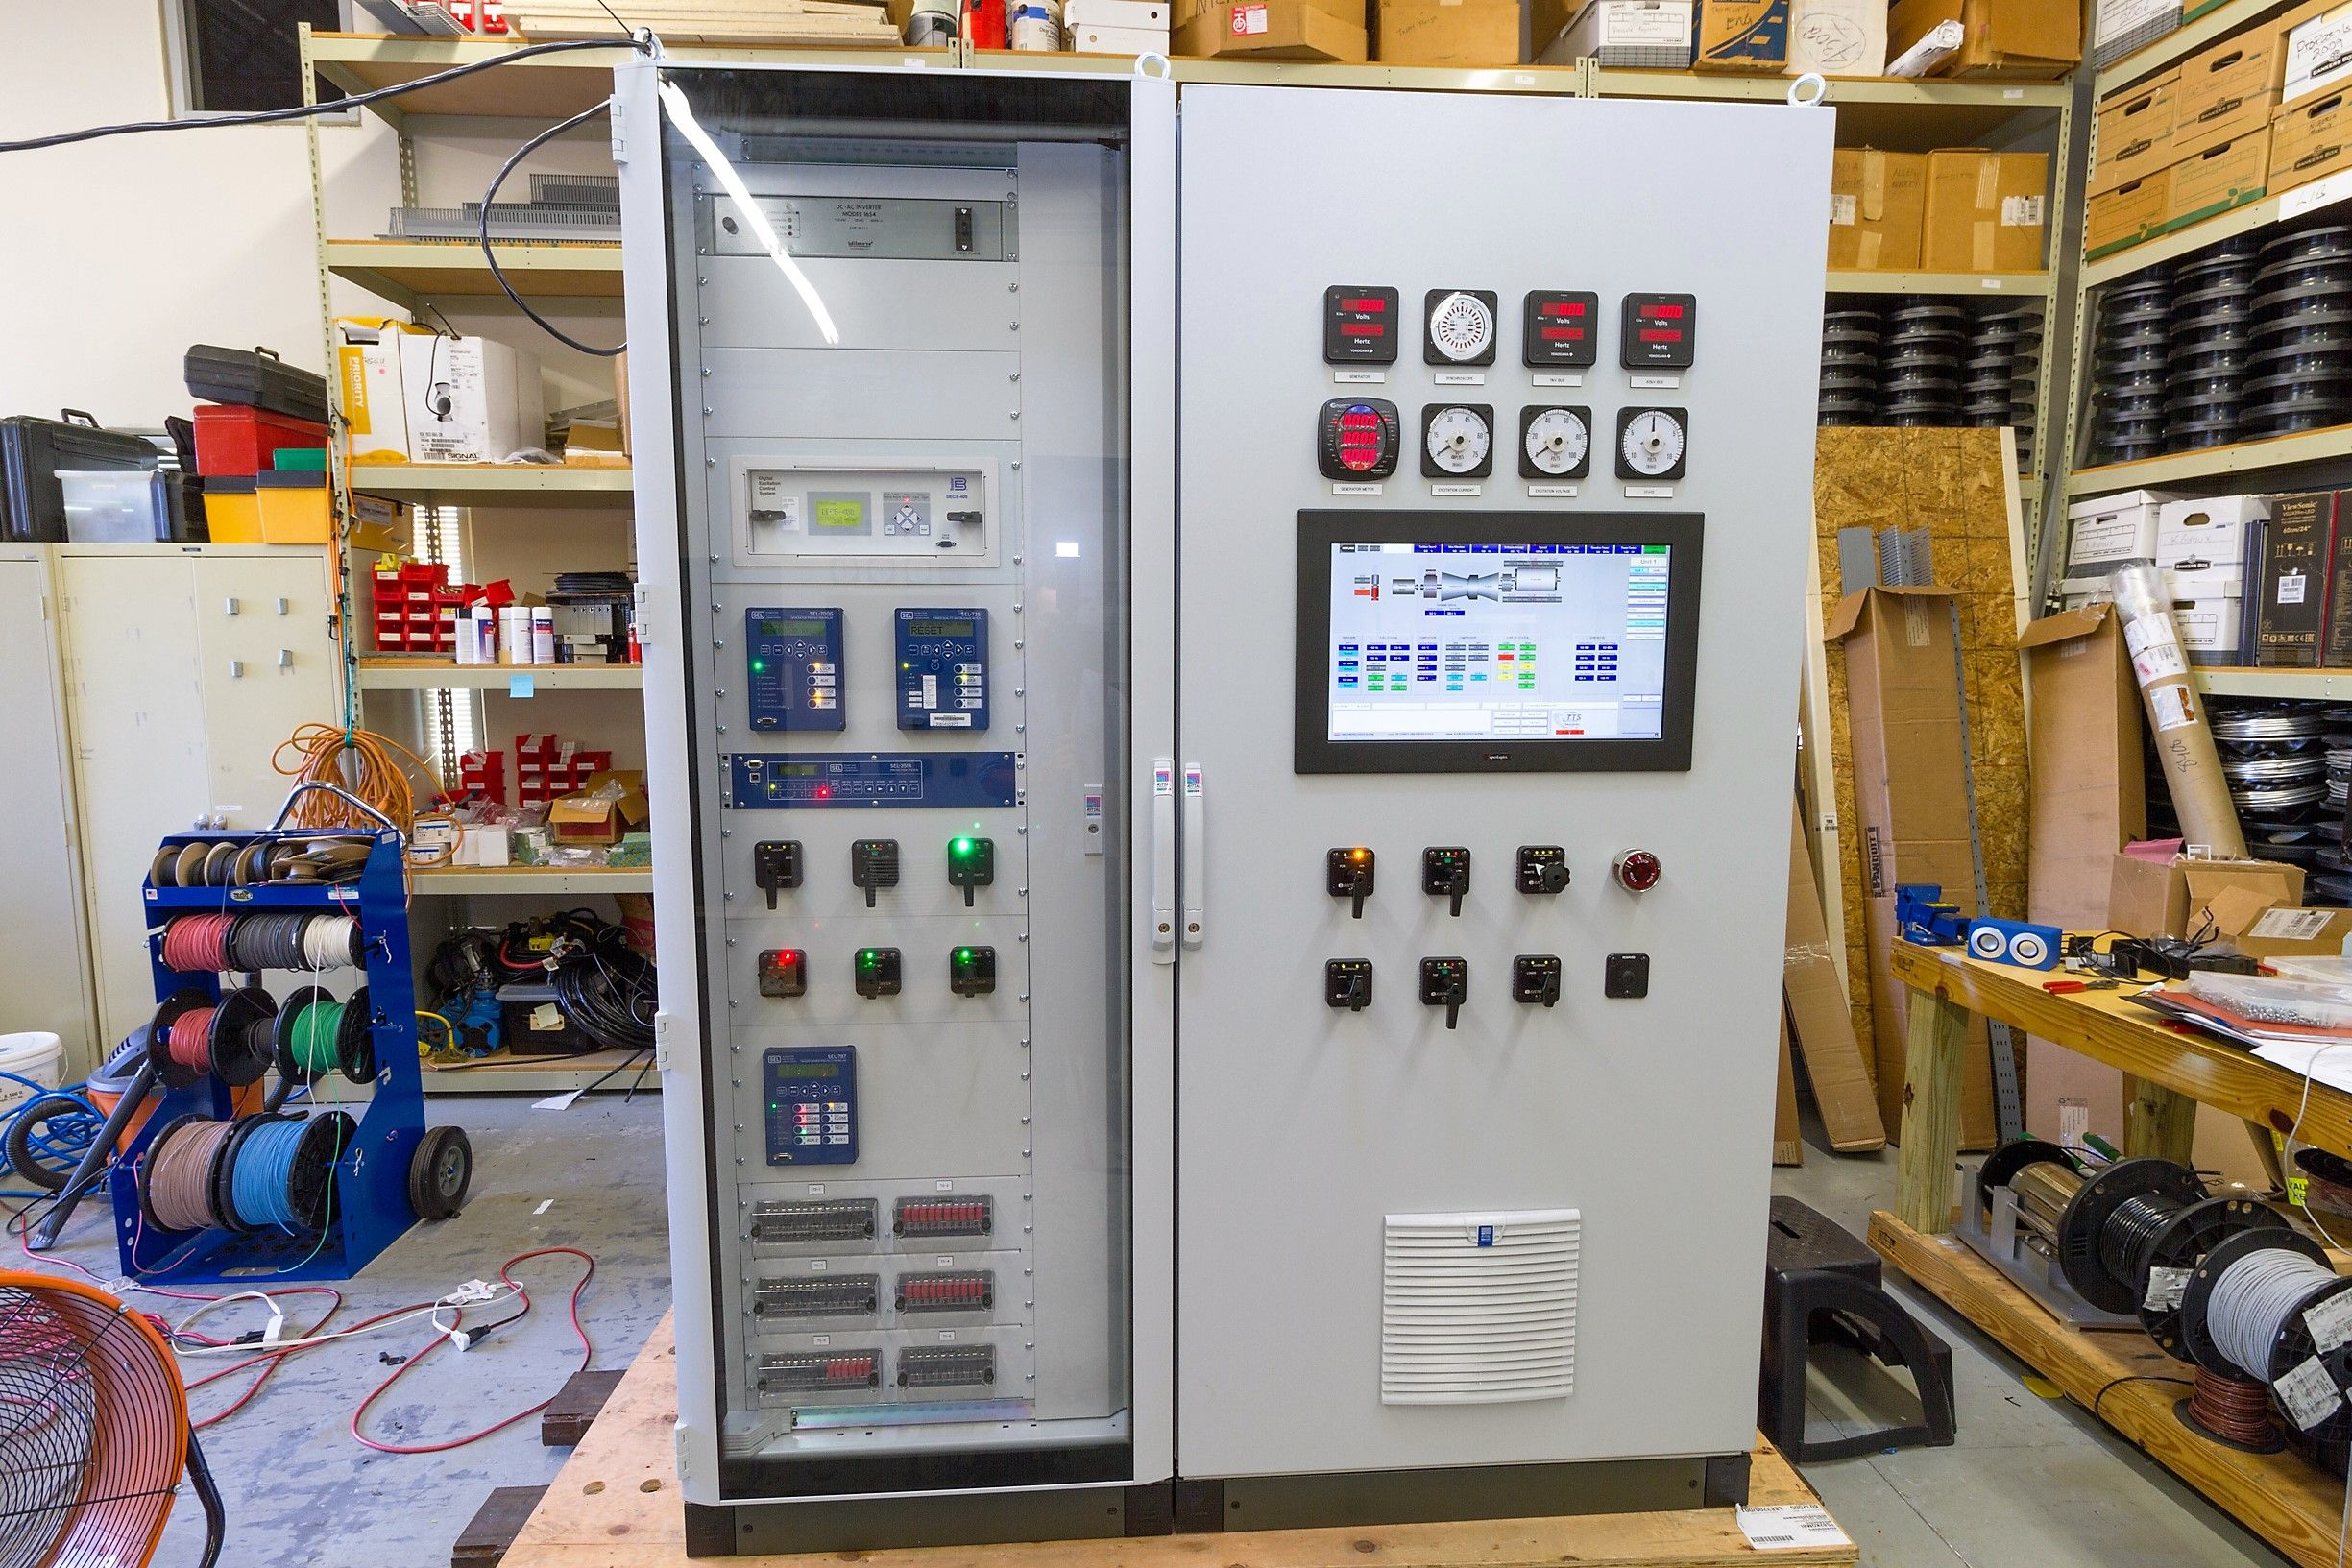 Searching for Industrial Control Panel? Control panel